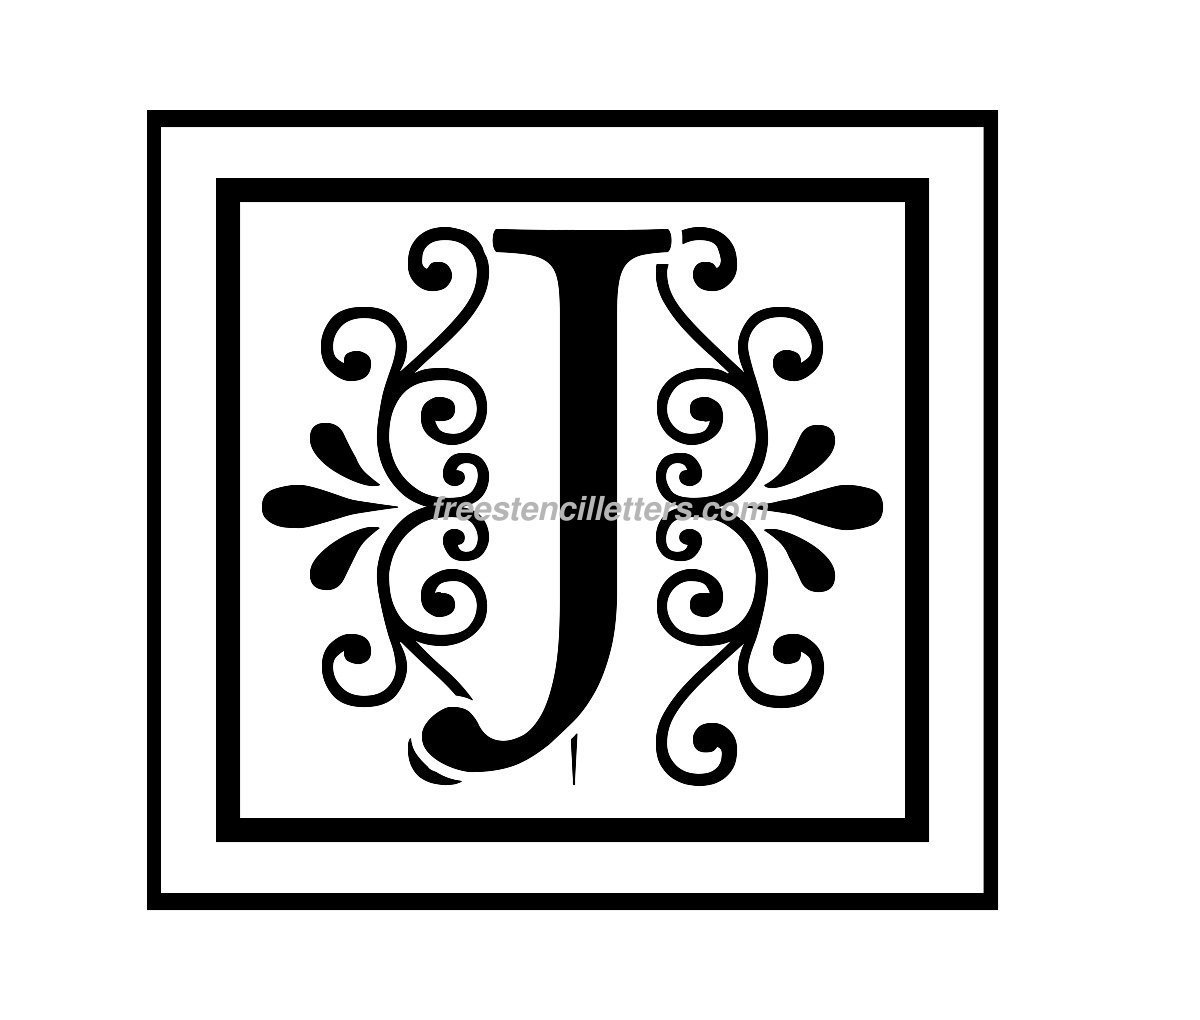 image regarding Printable Monogram Stencil called Print J Letter Stencil - Totally free Stencil Letters